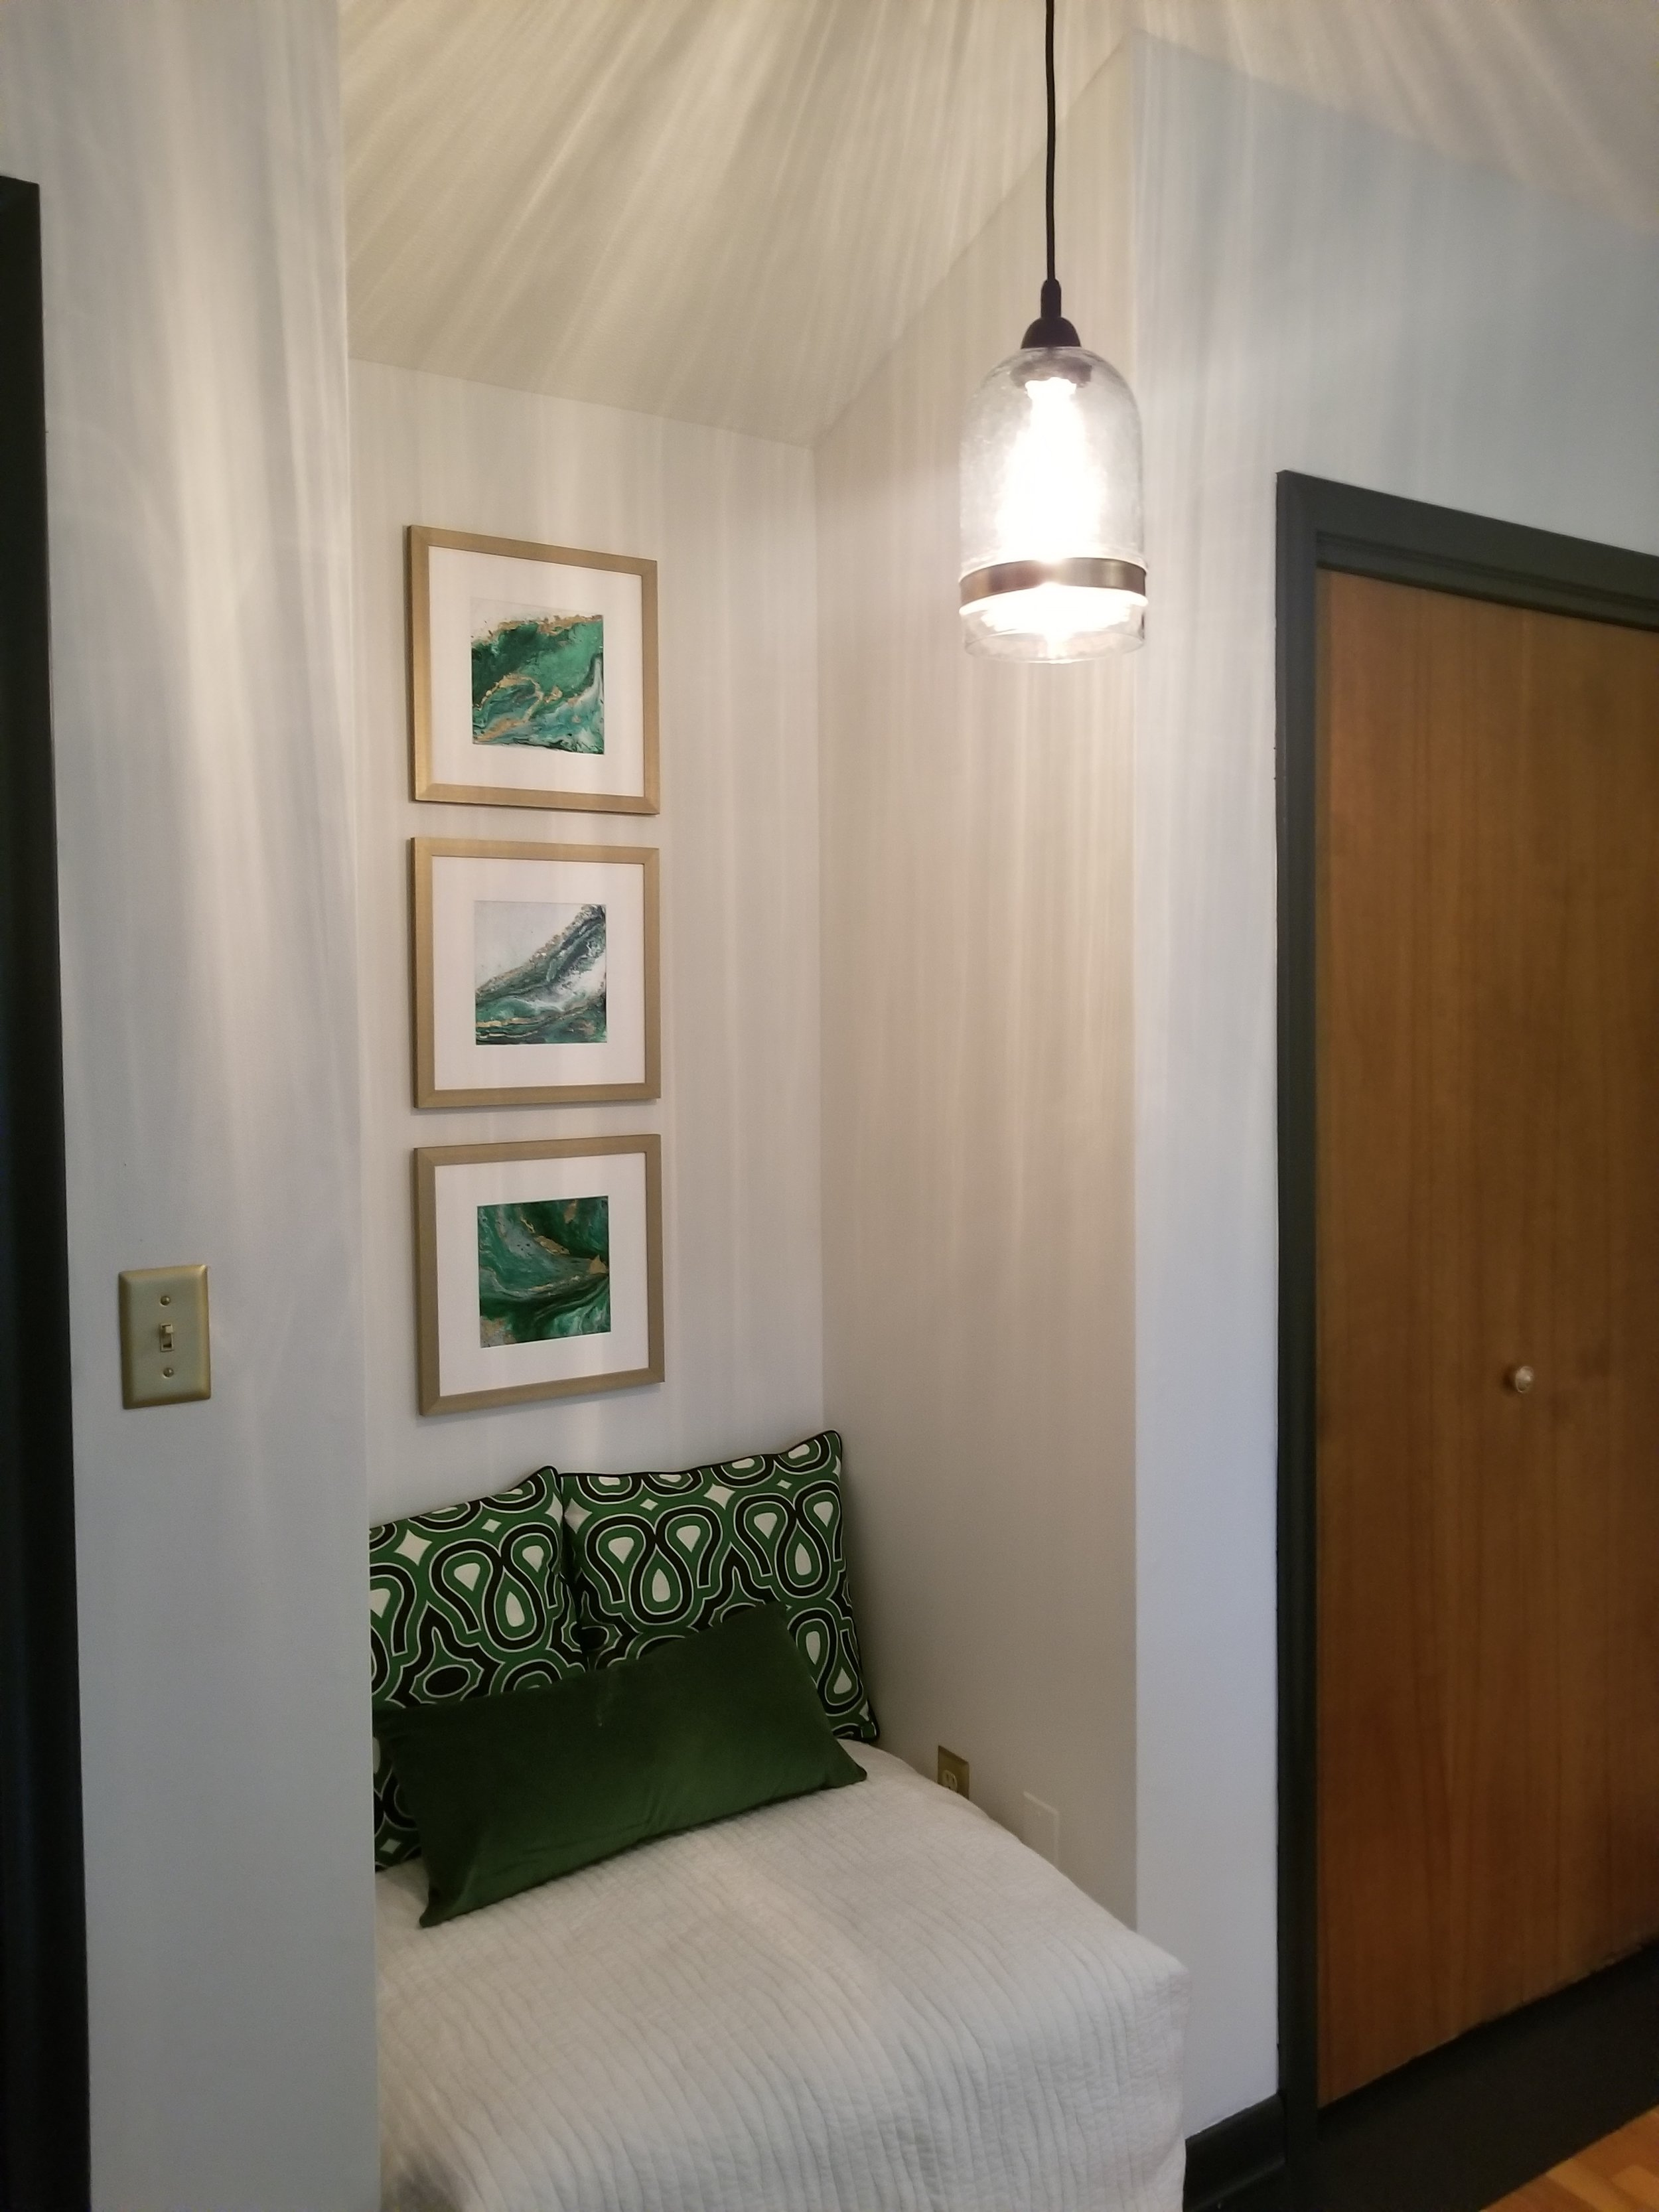 A cozy little nook, I had the green artwork previously in my dining room and it fits nicely in this space.